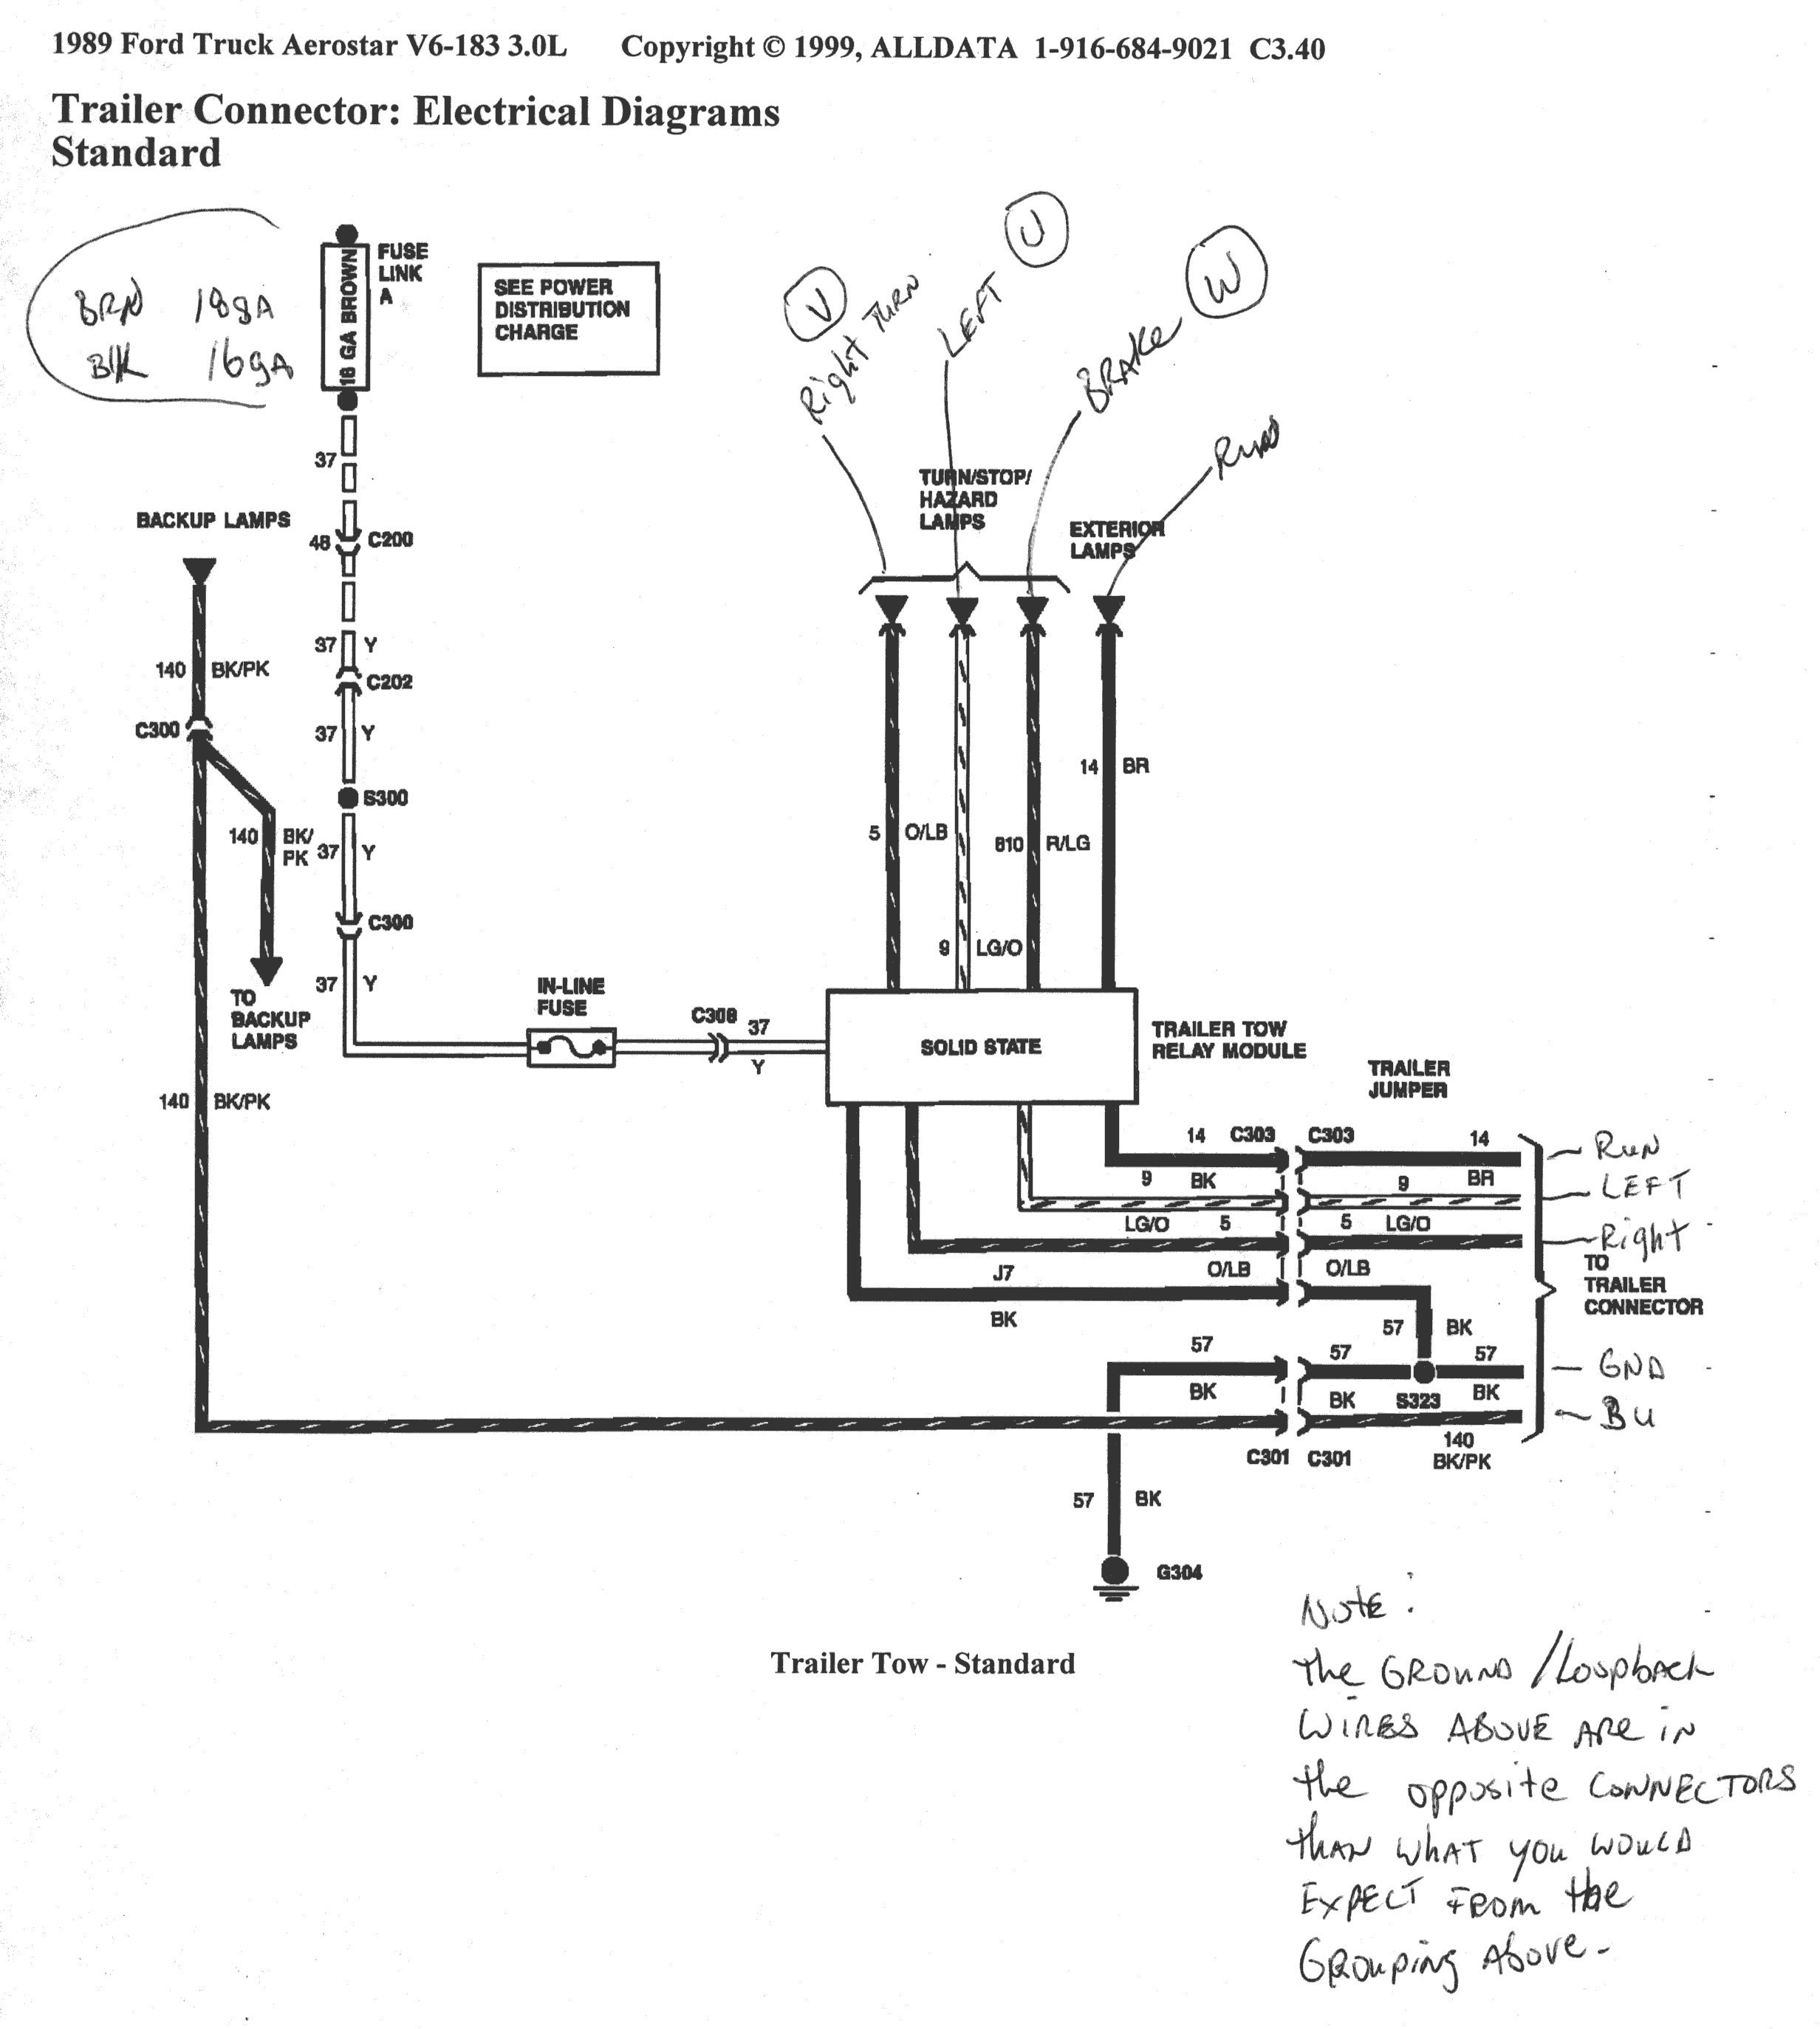 2001 F250 Trailer Wiring Diagram - Schematics Online  F Trailer Wiring Diagram on